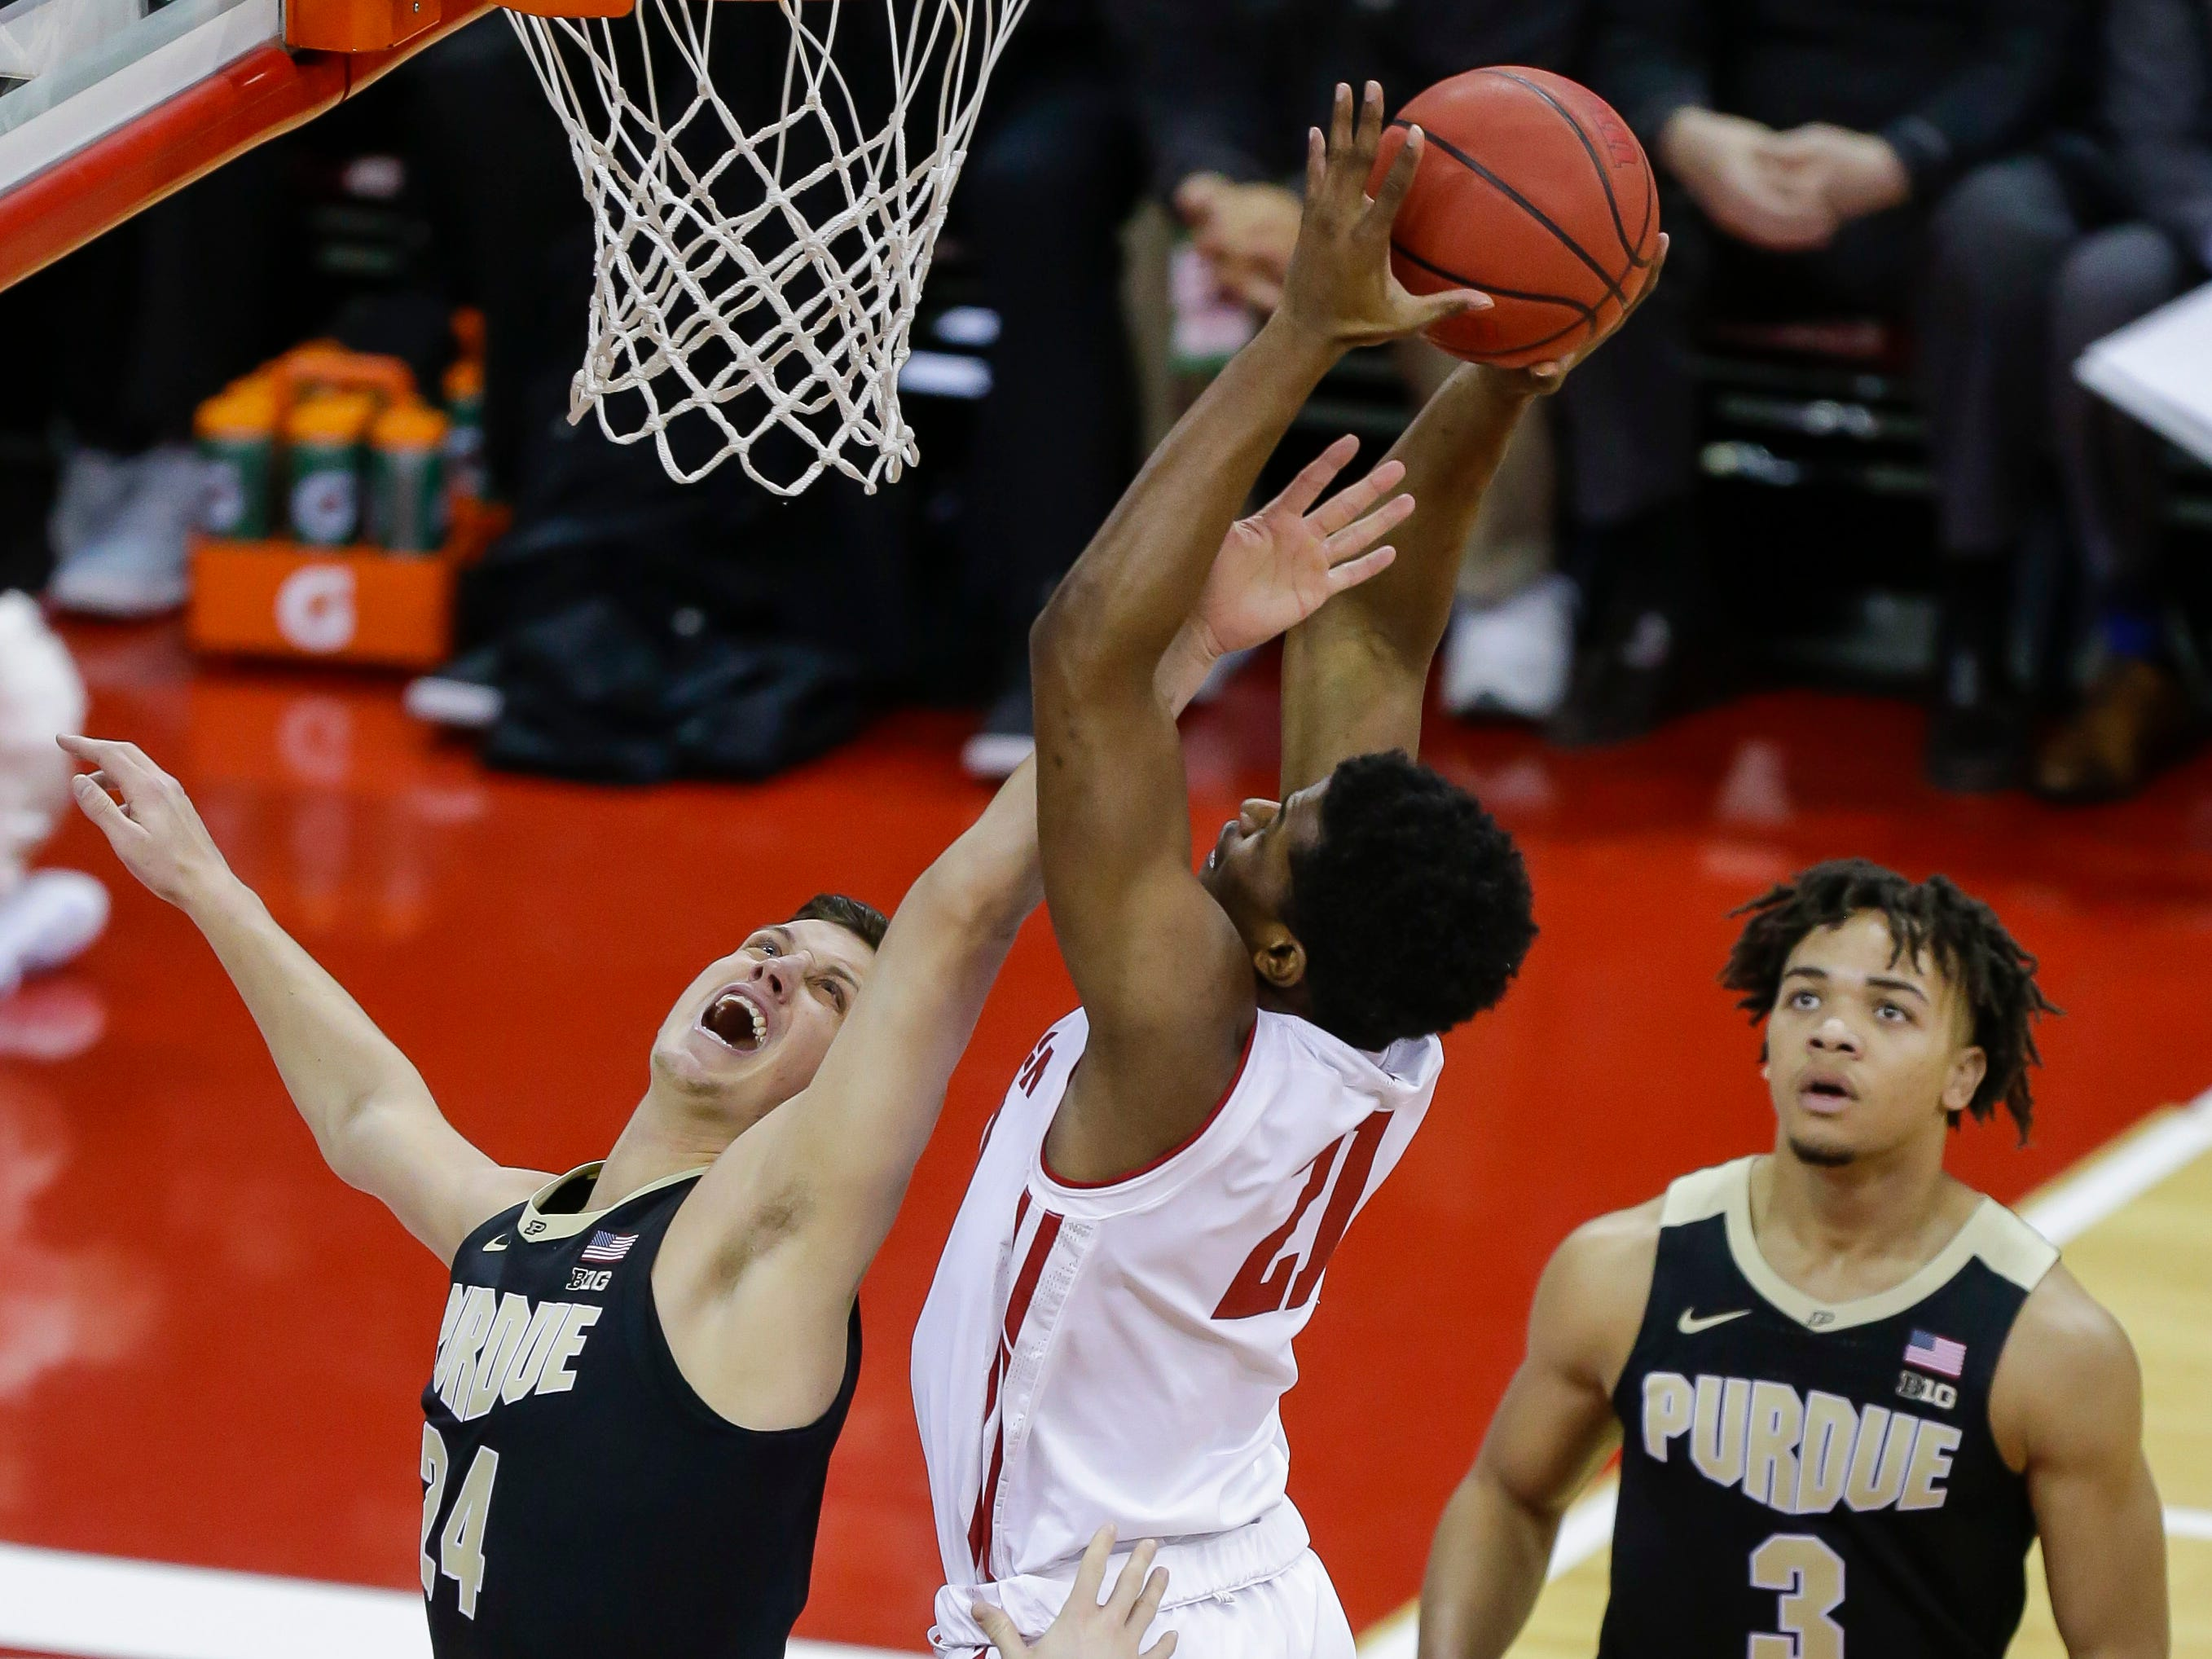 Wisconsin's Khalil Iverson goes up for a shot down low against Purdue's Grady Eifert during the first half Friday.